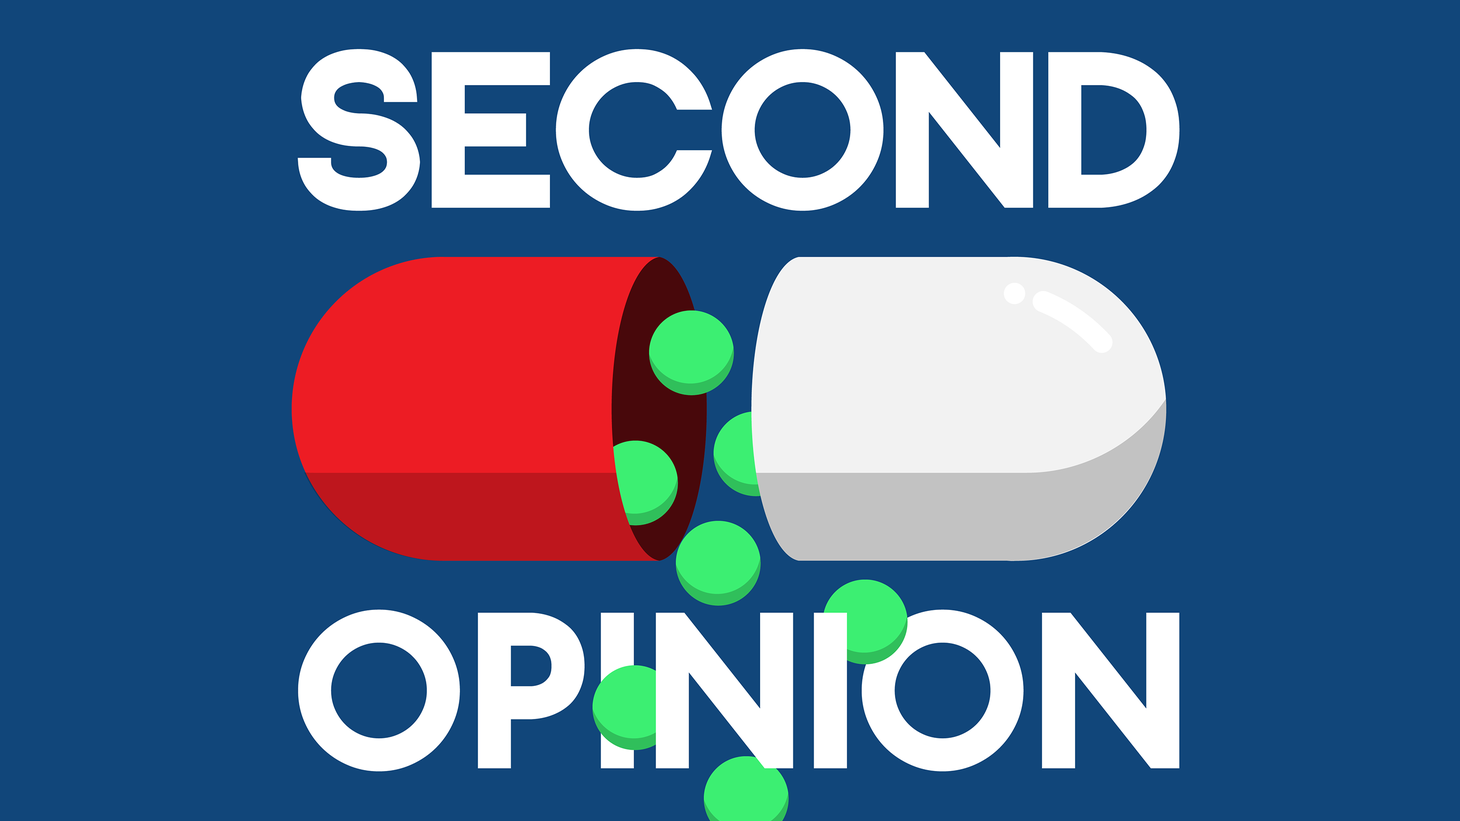 Patients should be told the magnitude of benefit about drugs to treat diseases so they can make personal informed decisions...